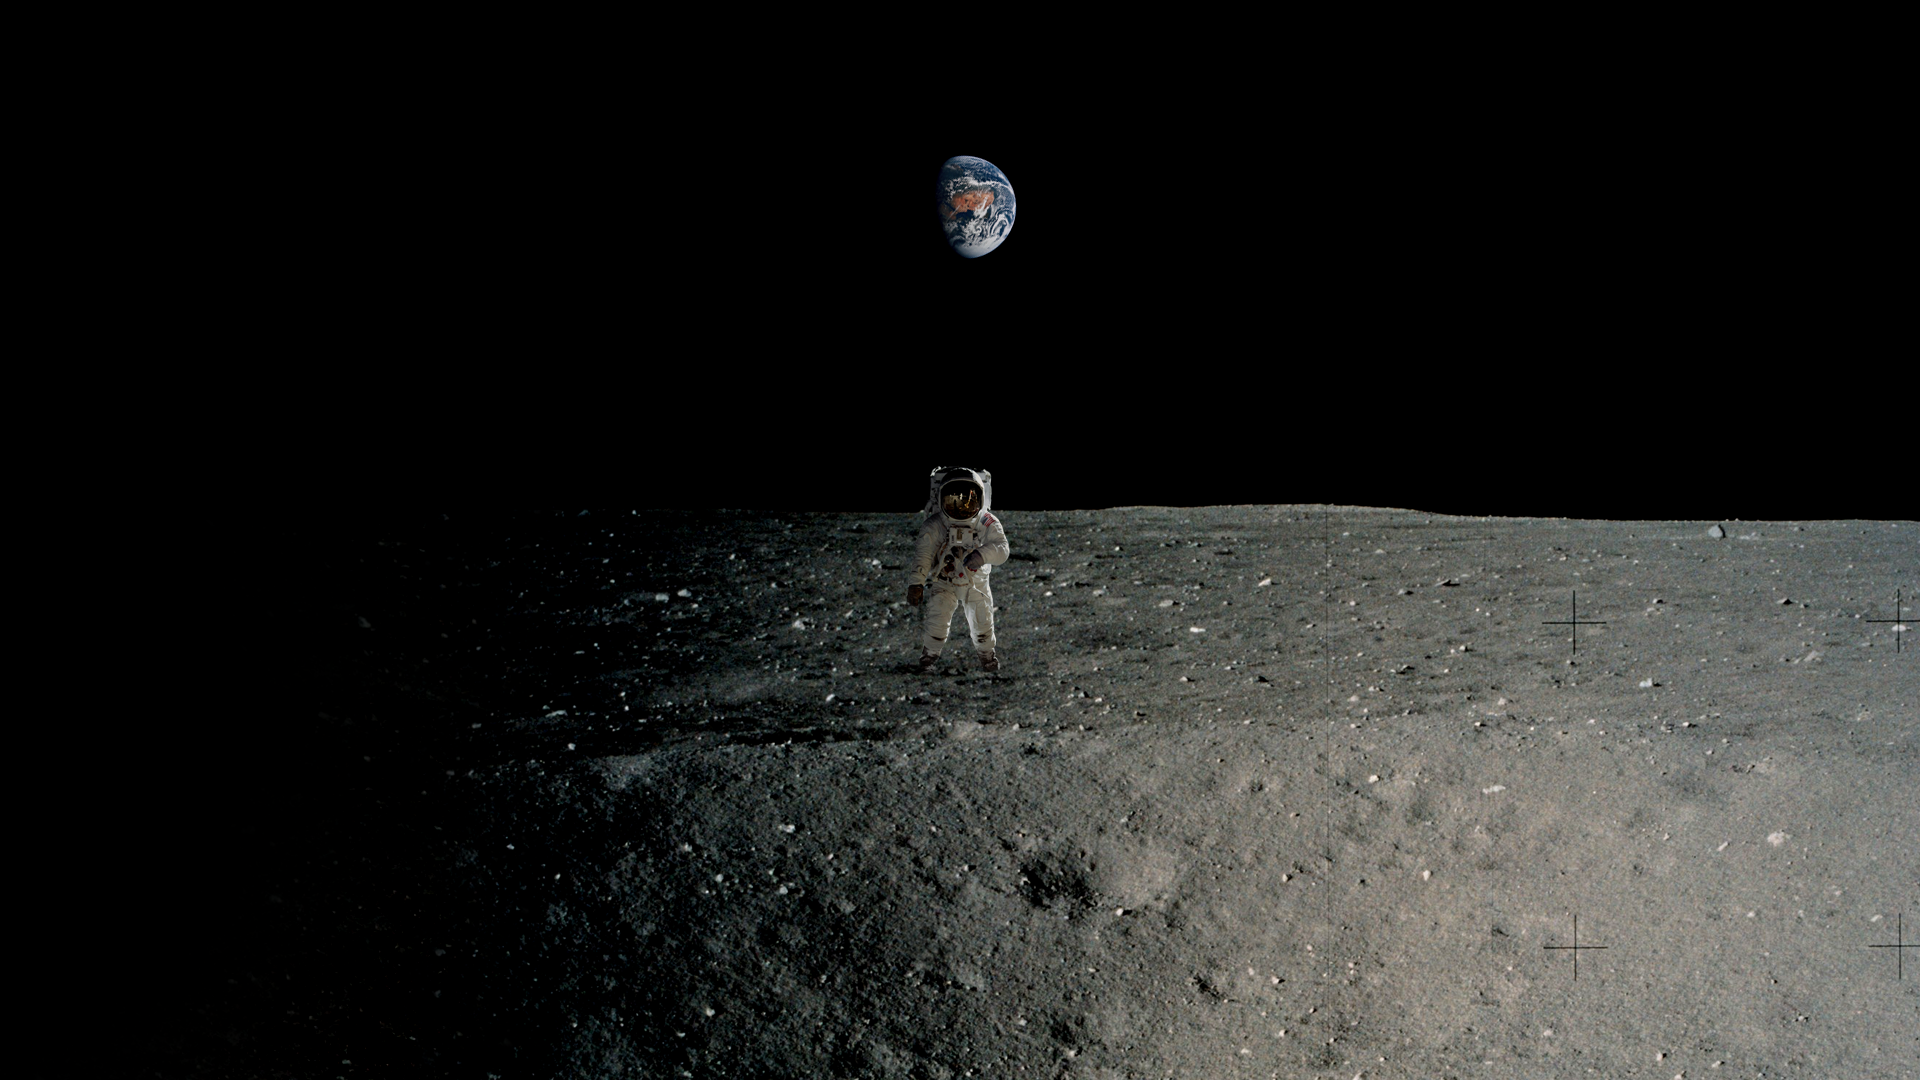 Moonwalk Wallpaper [1920X1080] apollo 1920x1080